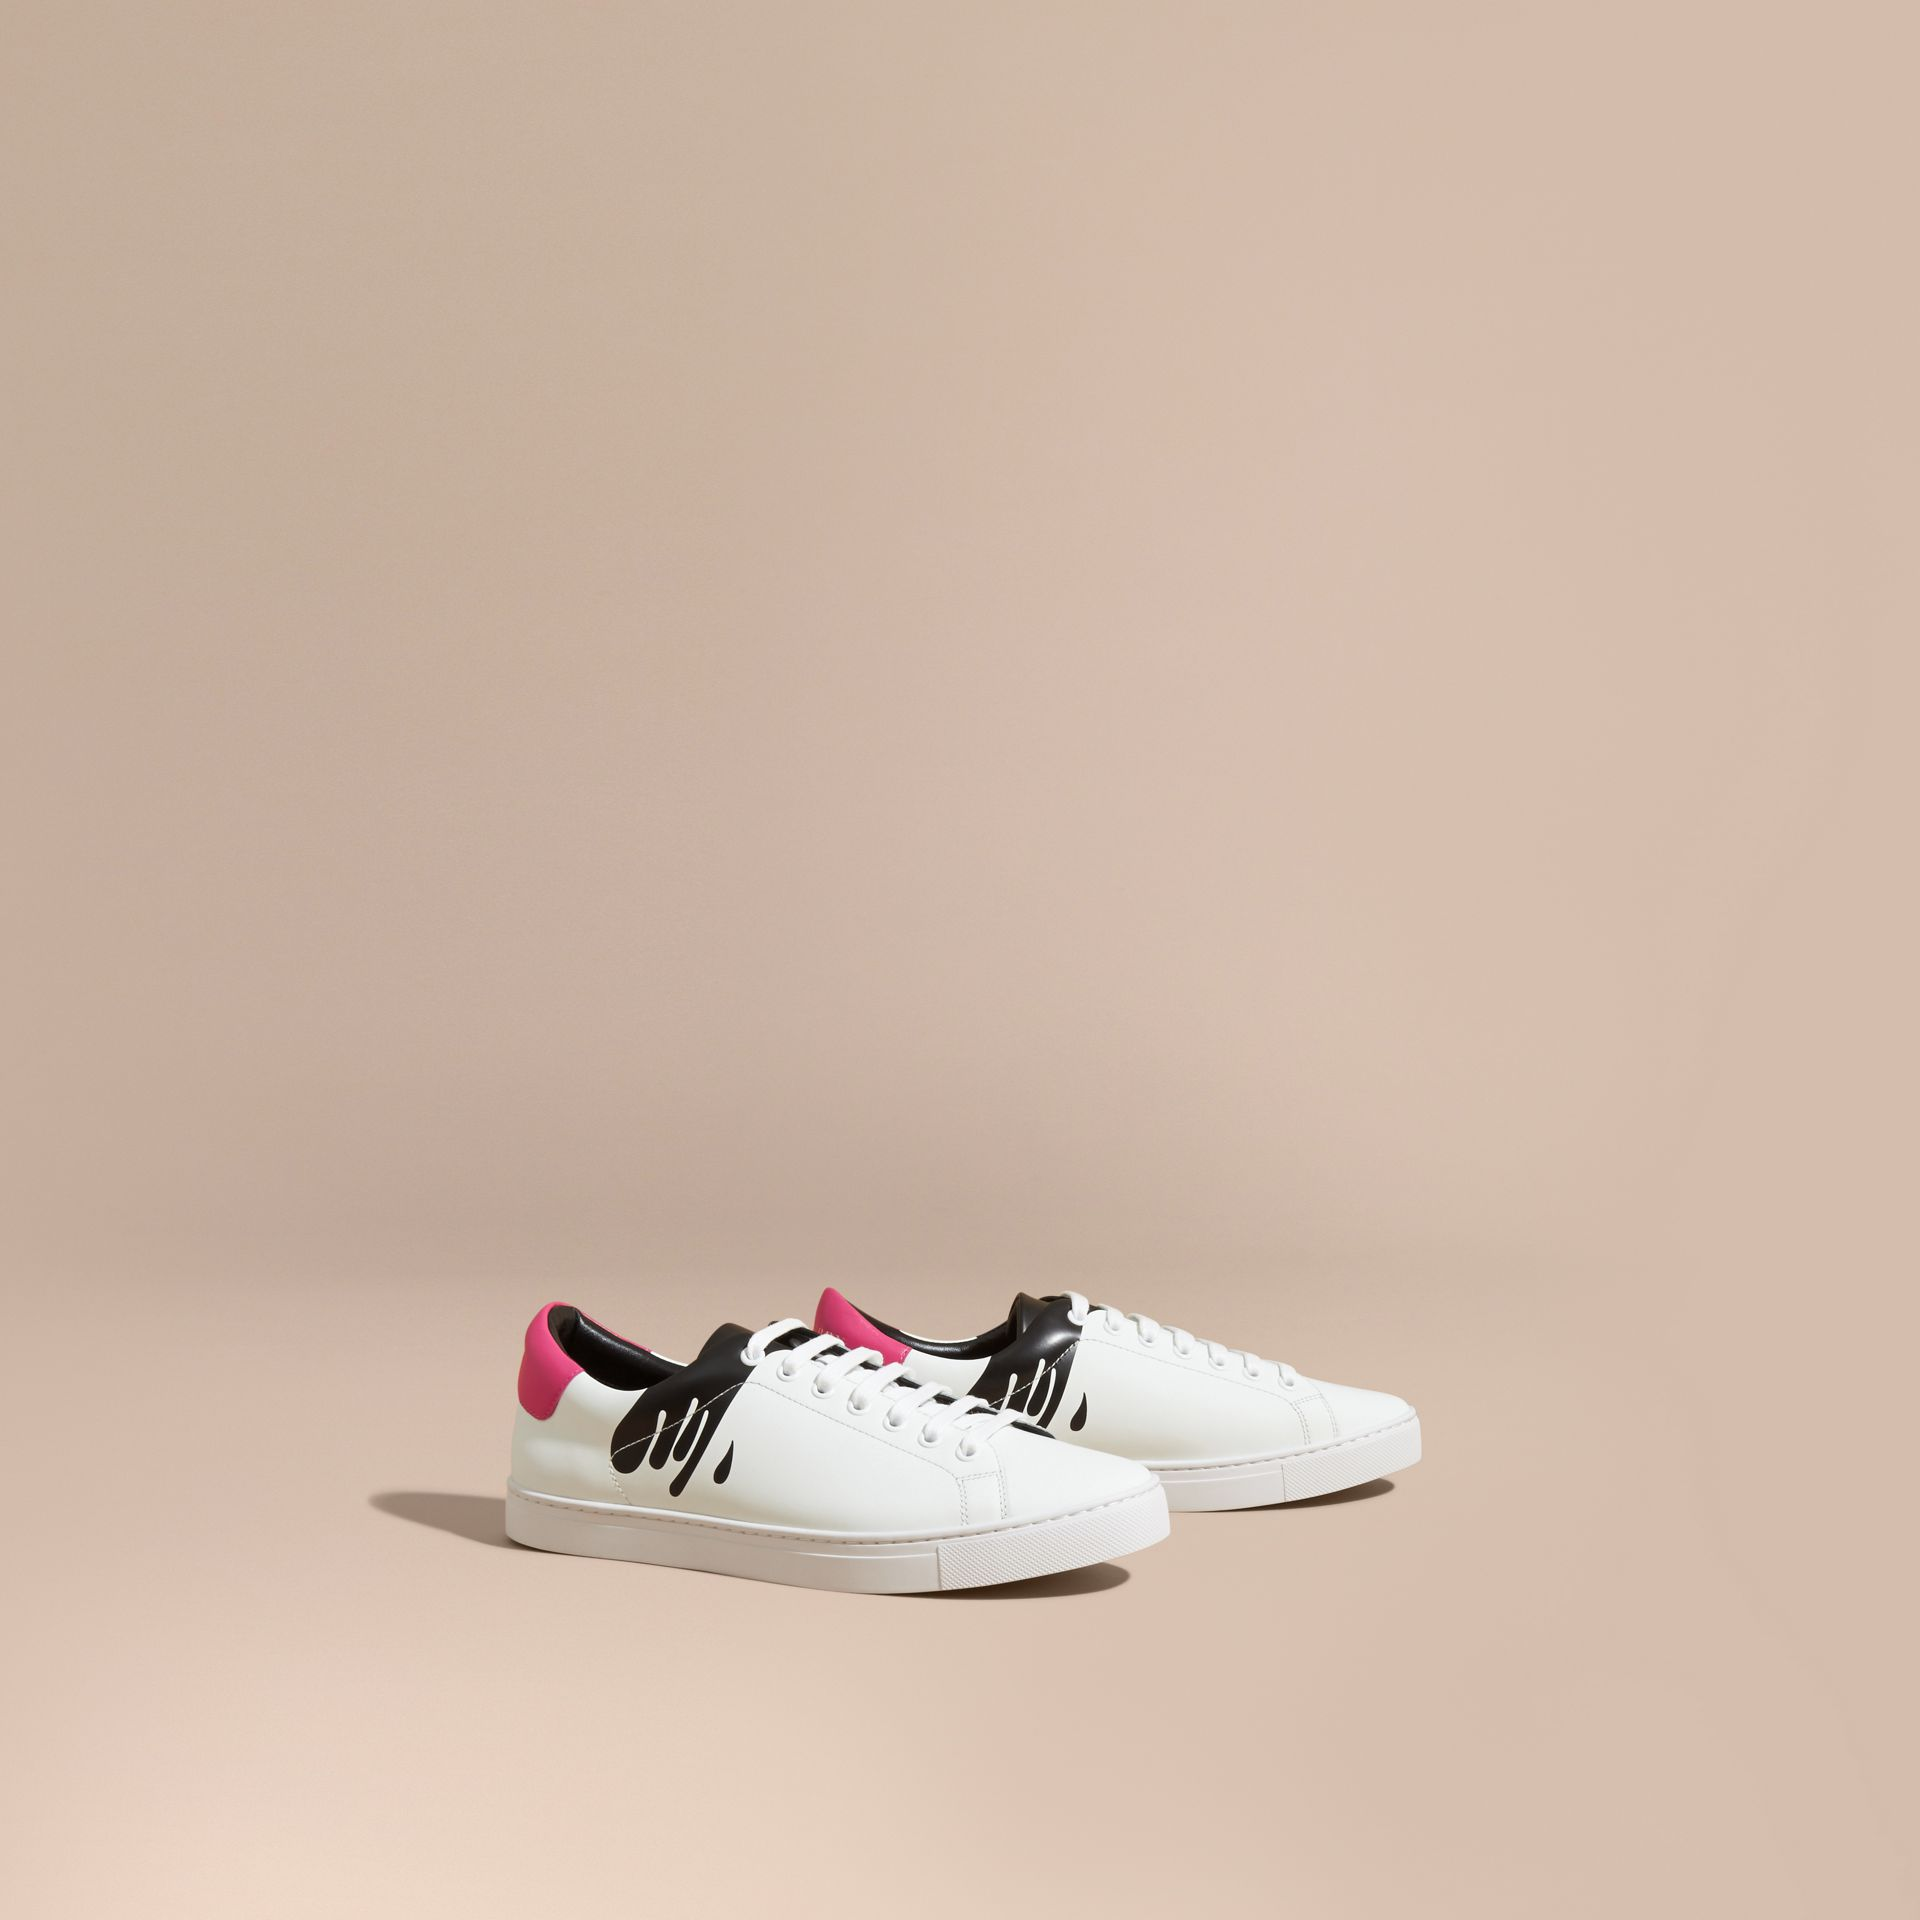 Optic white/black Splash Motif Leather Trainers Optic White/black - gallery image 1